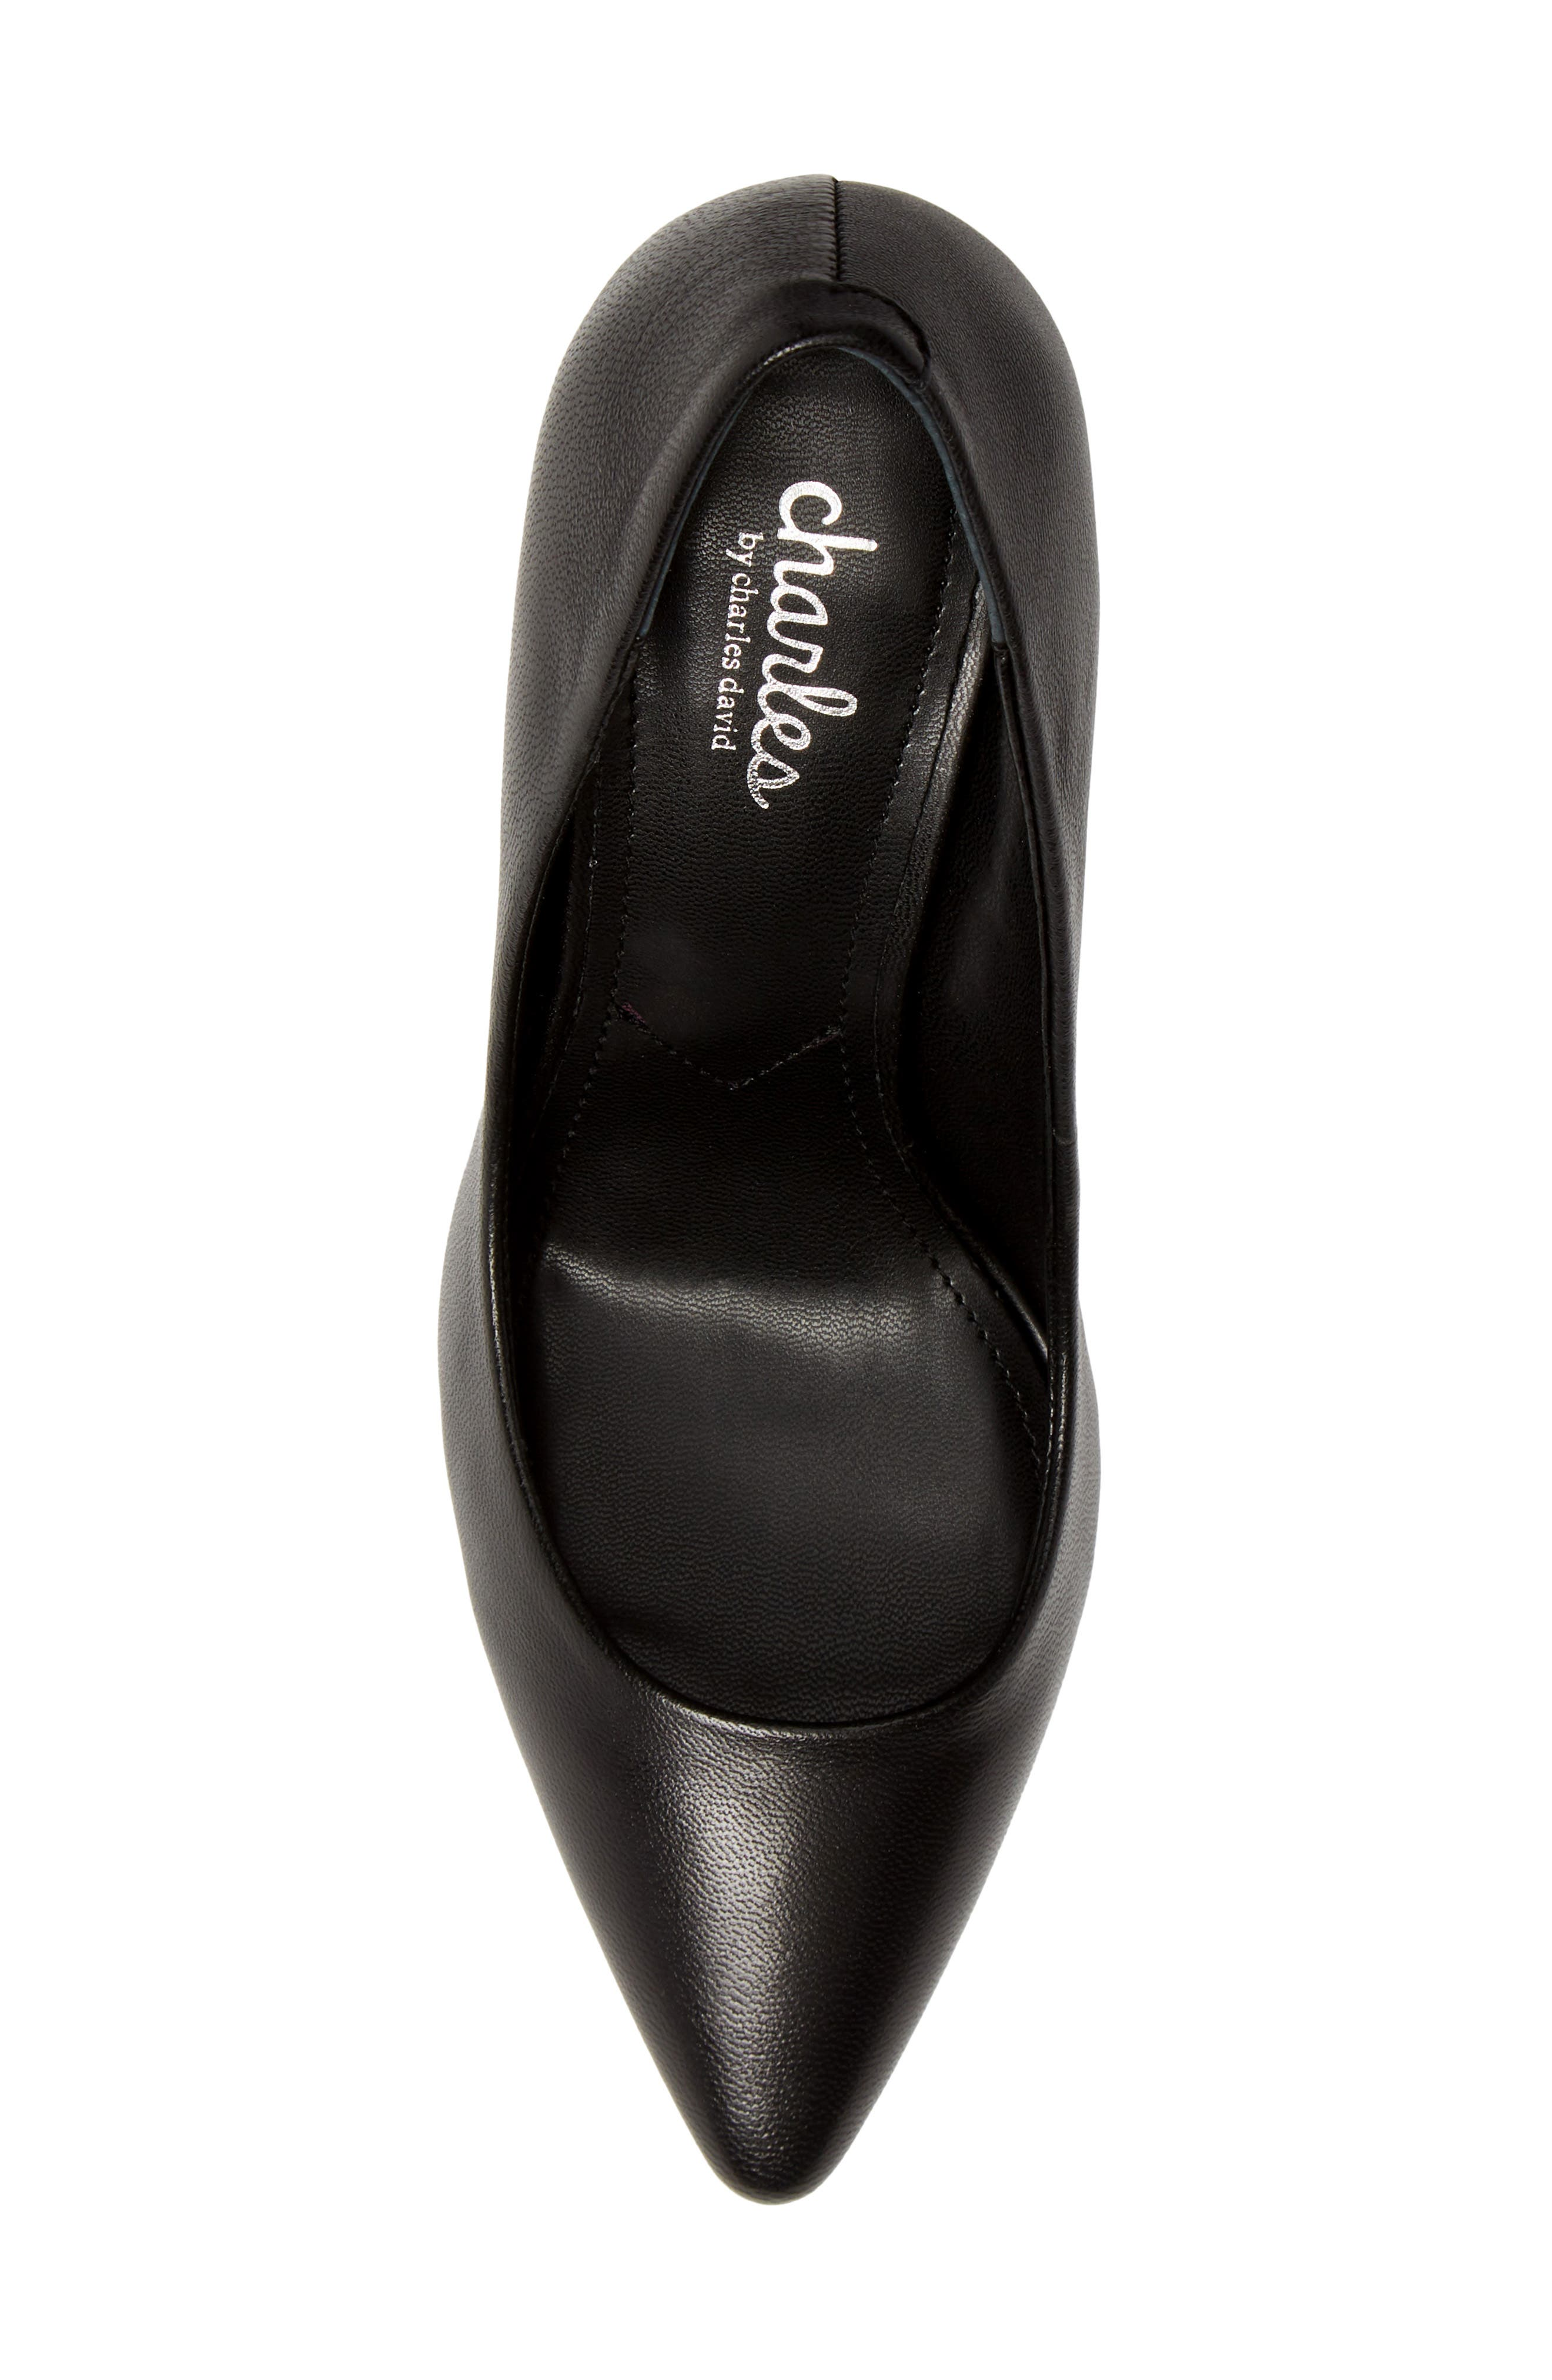 CHARLES BY CHARLES DAVID,                             Vicky Pump,                             Alternate thumbnail 5, color,                             BLACK LEATHER